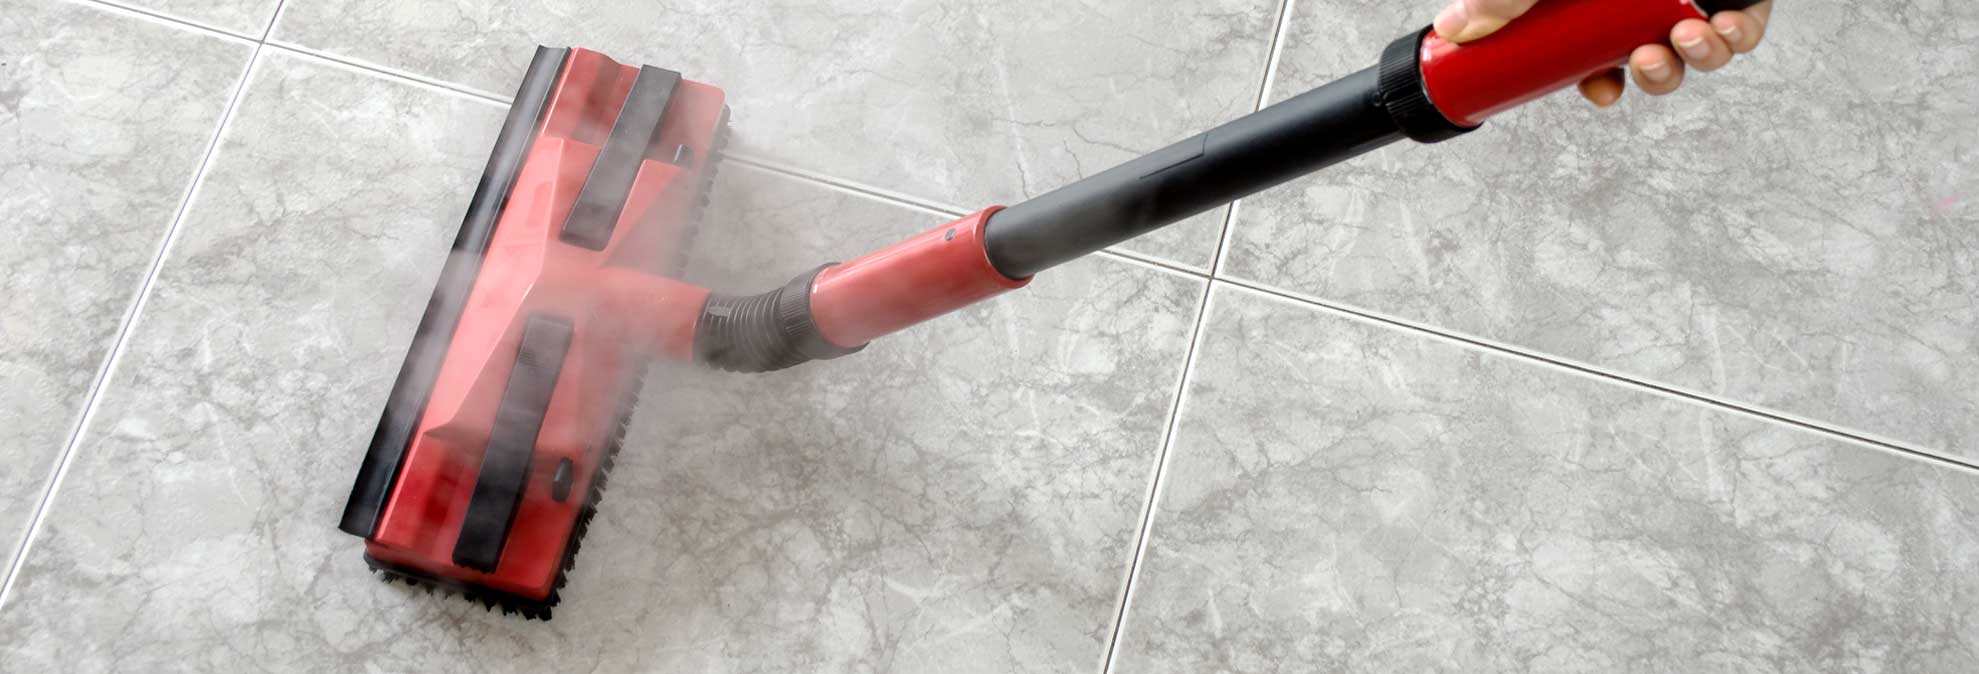 Best Steam Mop Buying Guide Consumer Reports